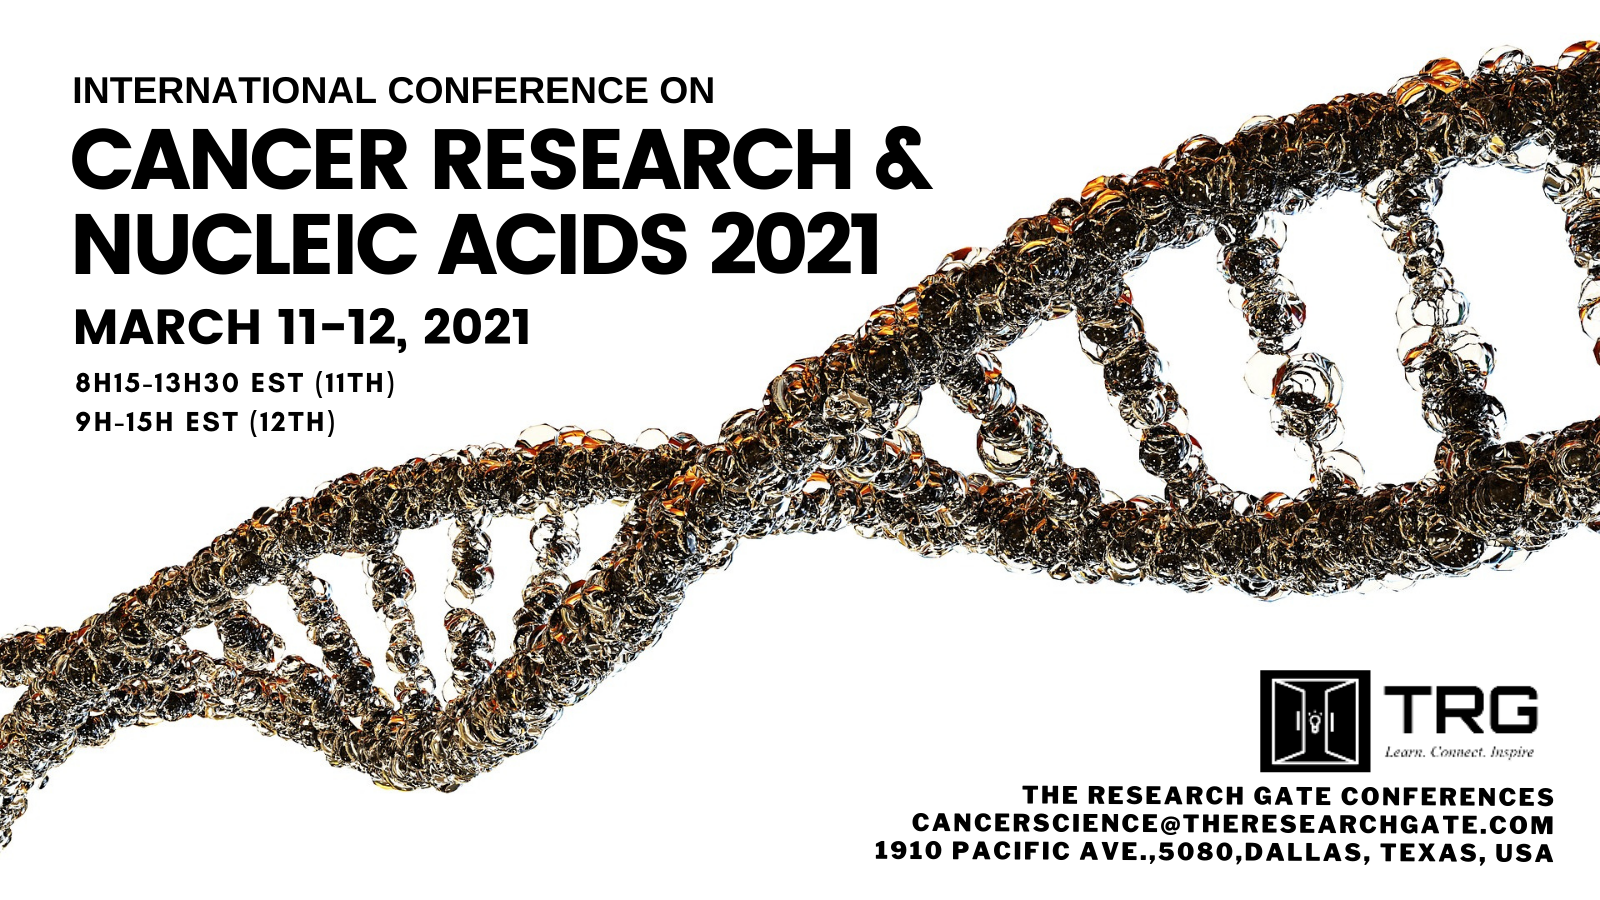 Cancer Research & Nucleic Acids 2021_March 11-12, 2021